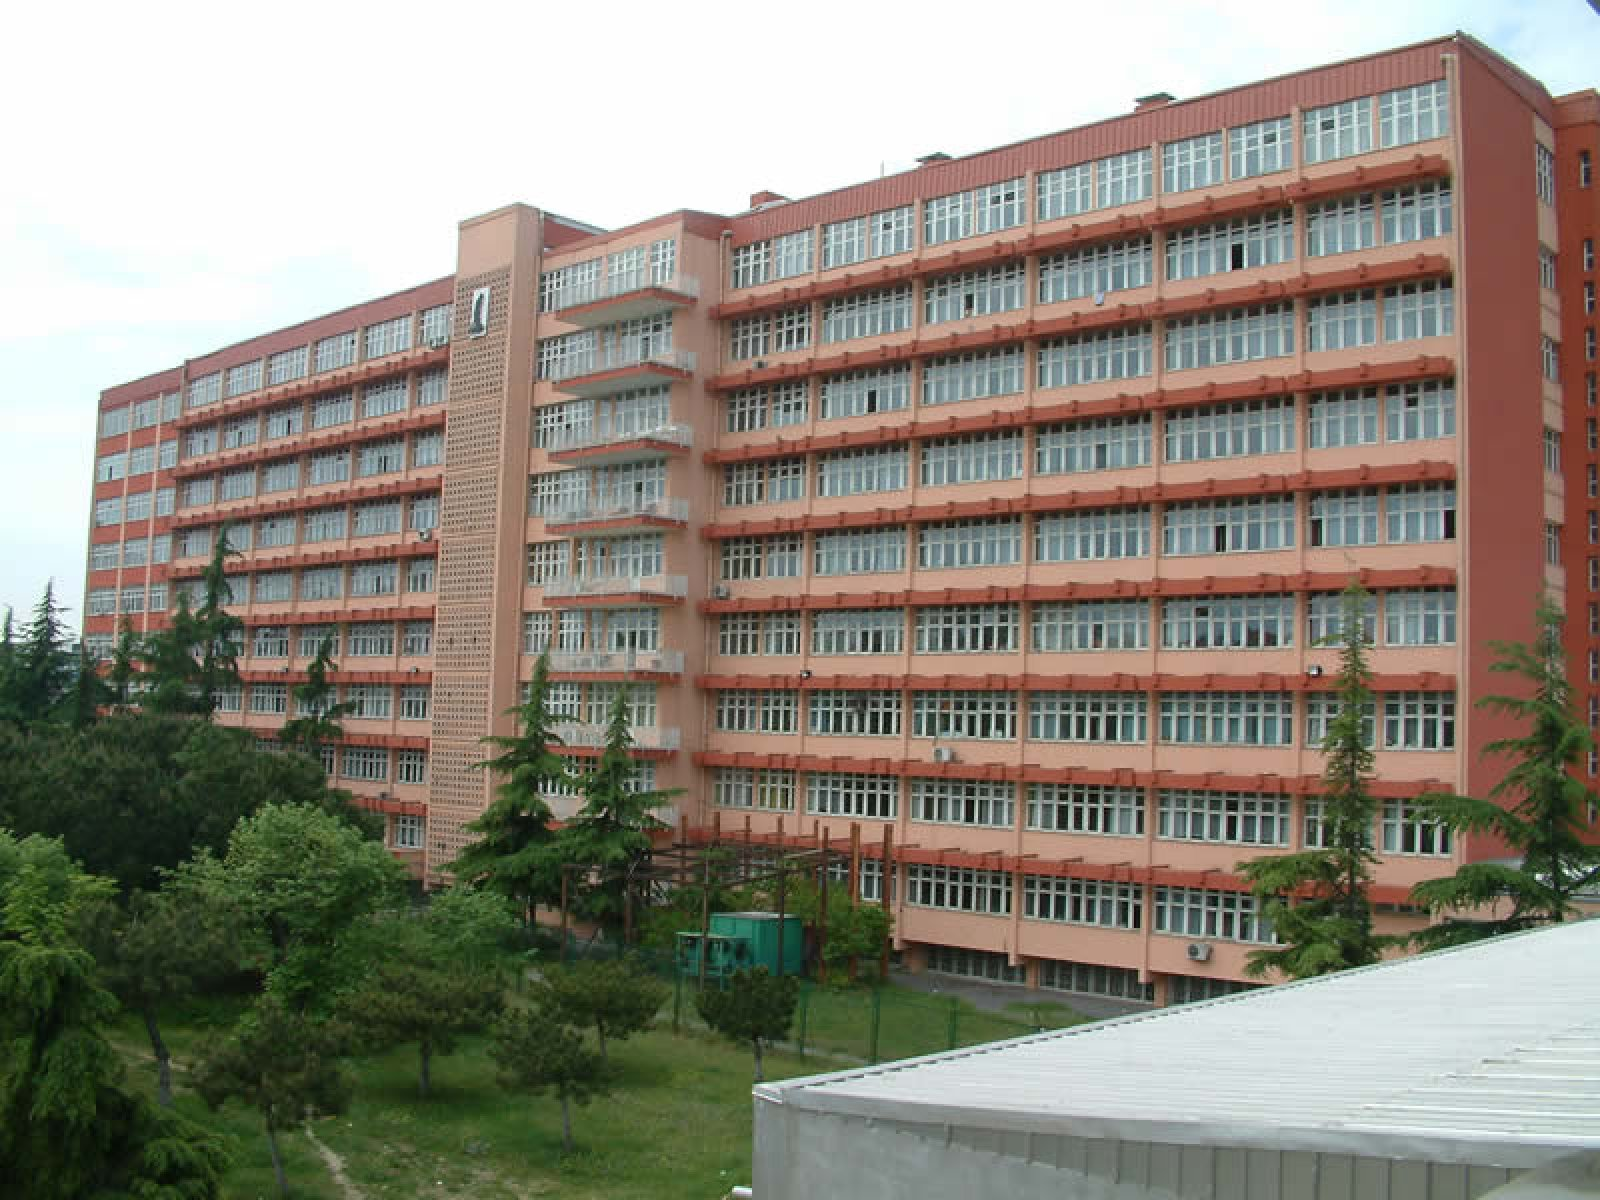 Samatya Education and Research State Hospital